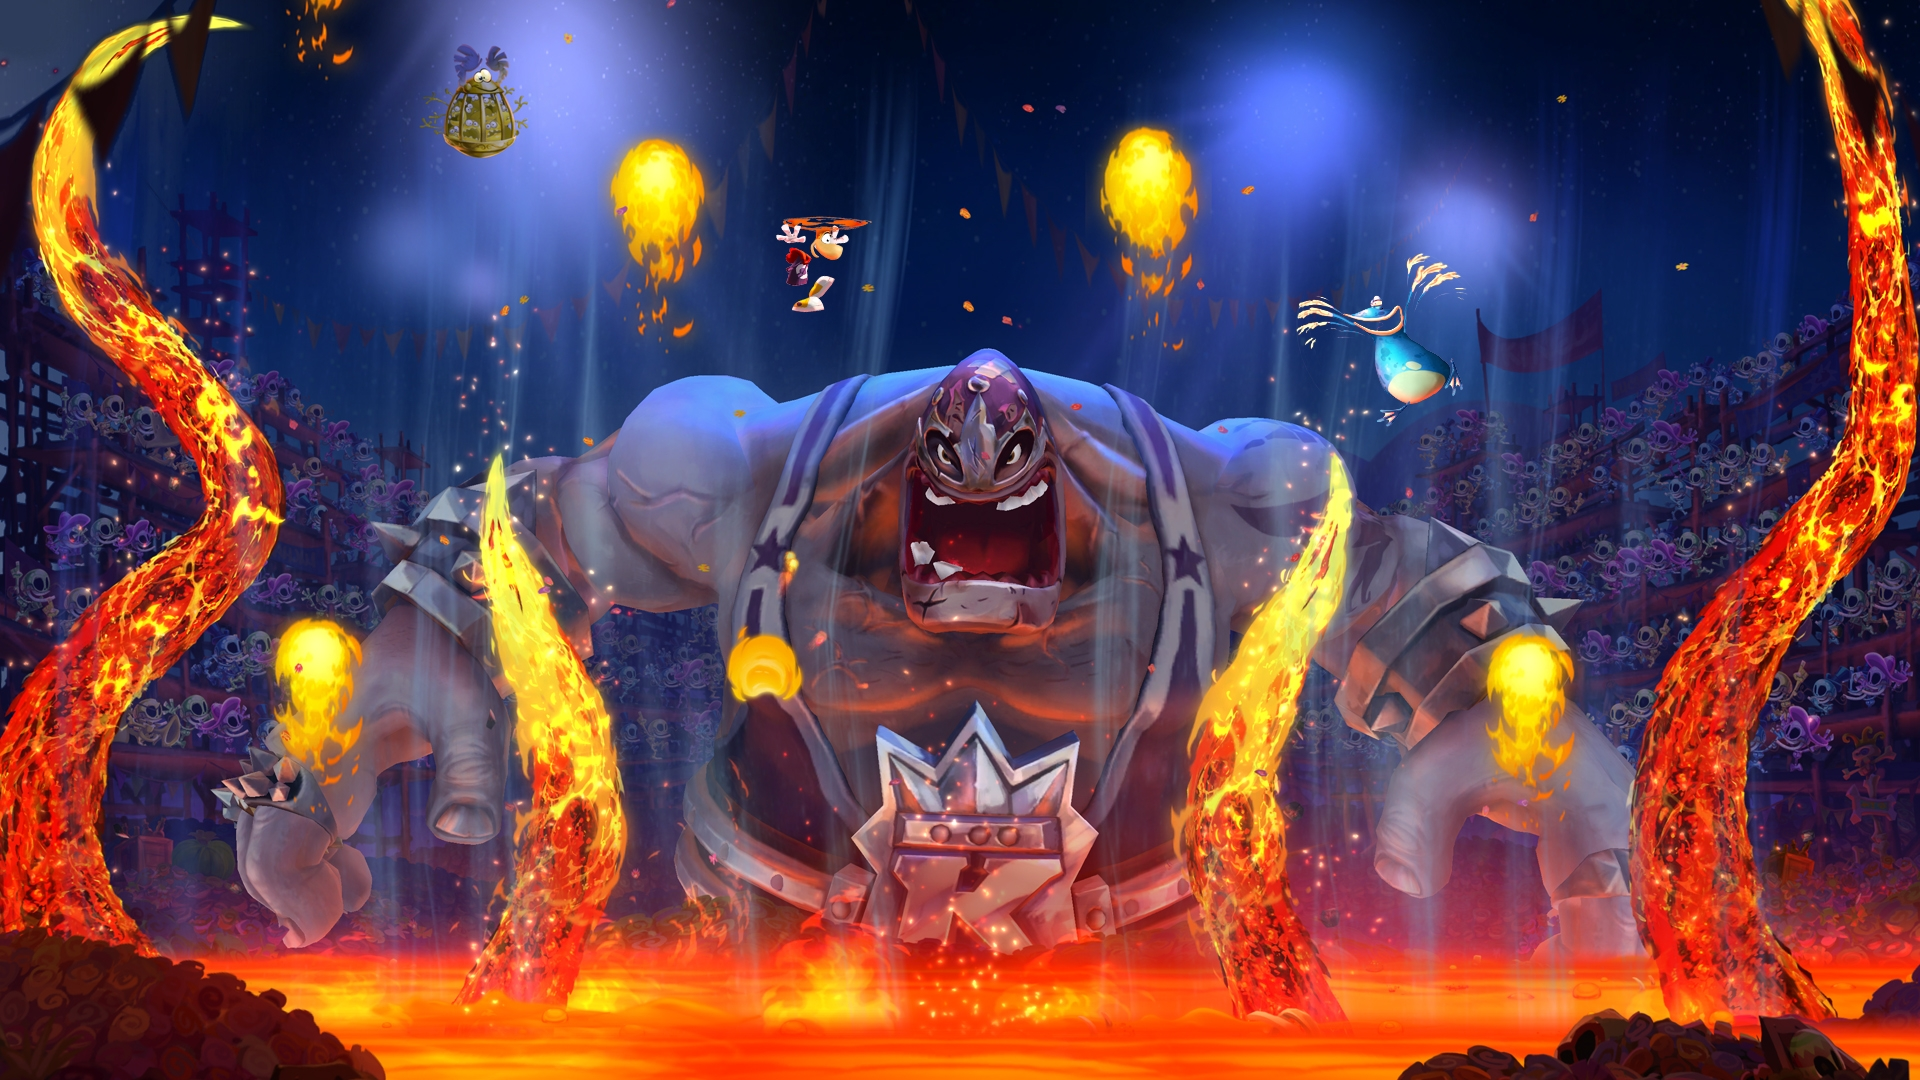 rayman-legends-gamescom-2013-01